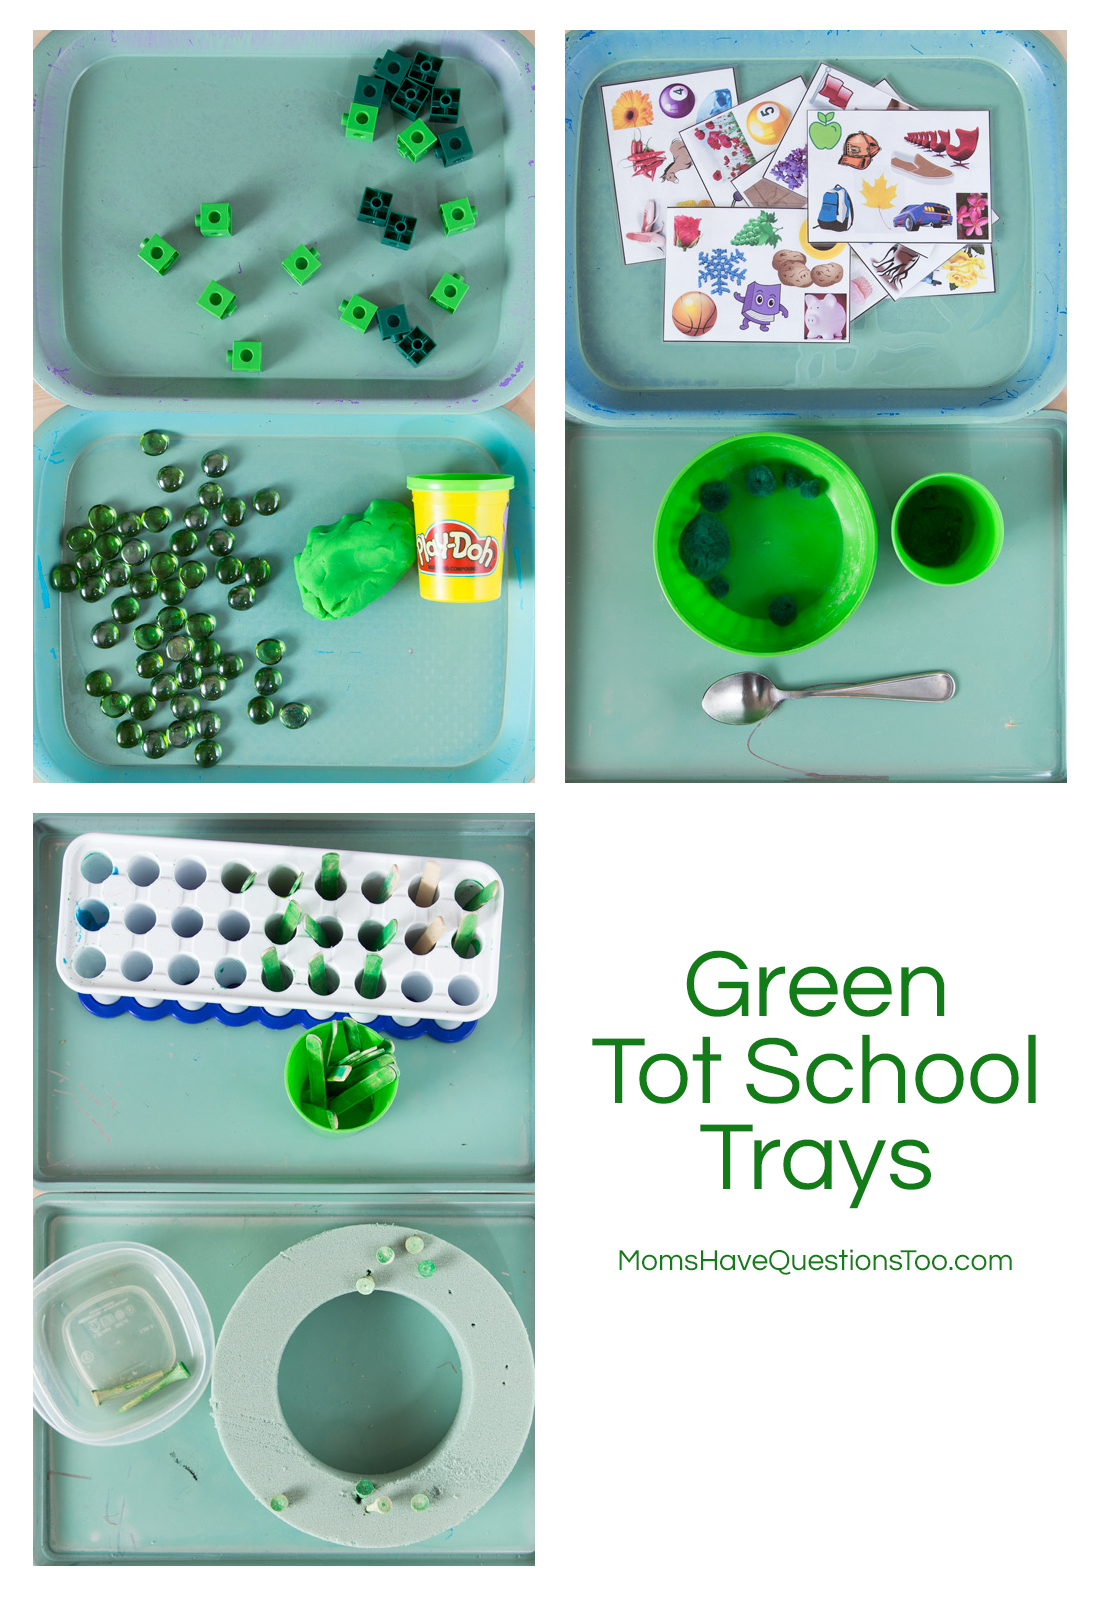 Green Tot School Trays - Moms Have Questions Too